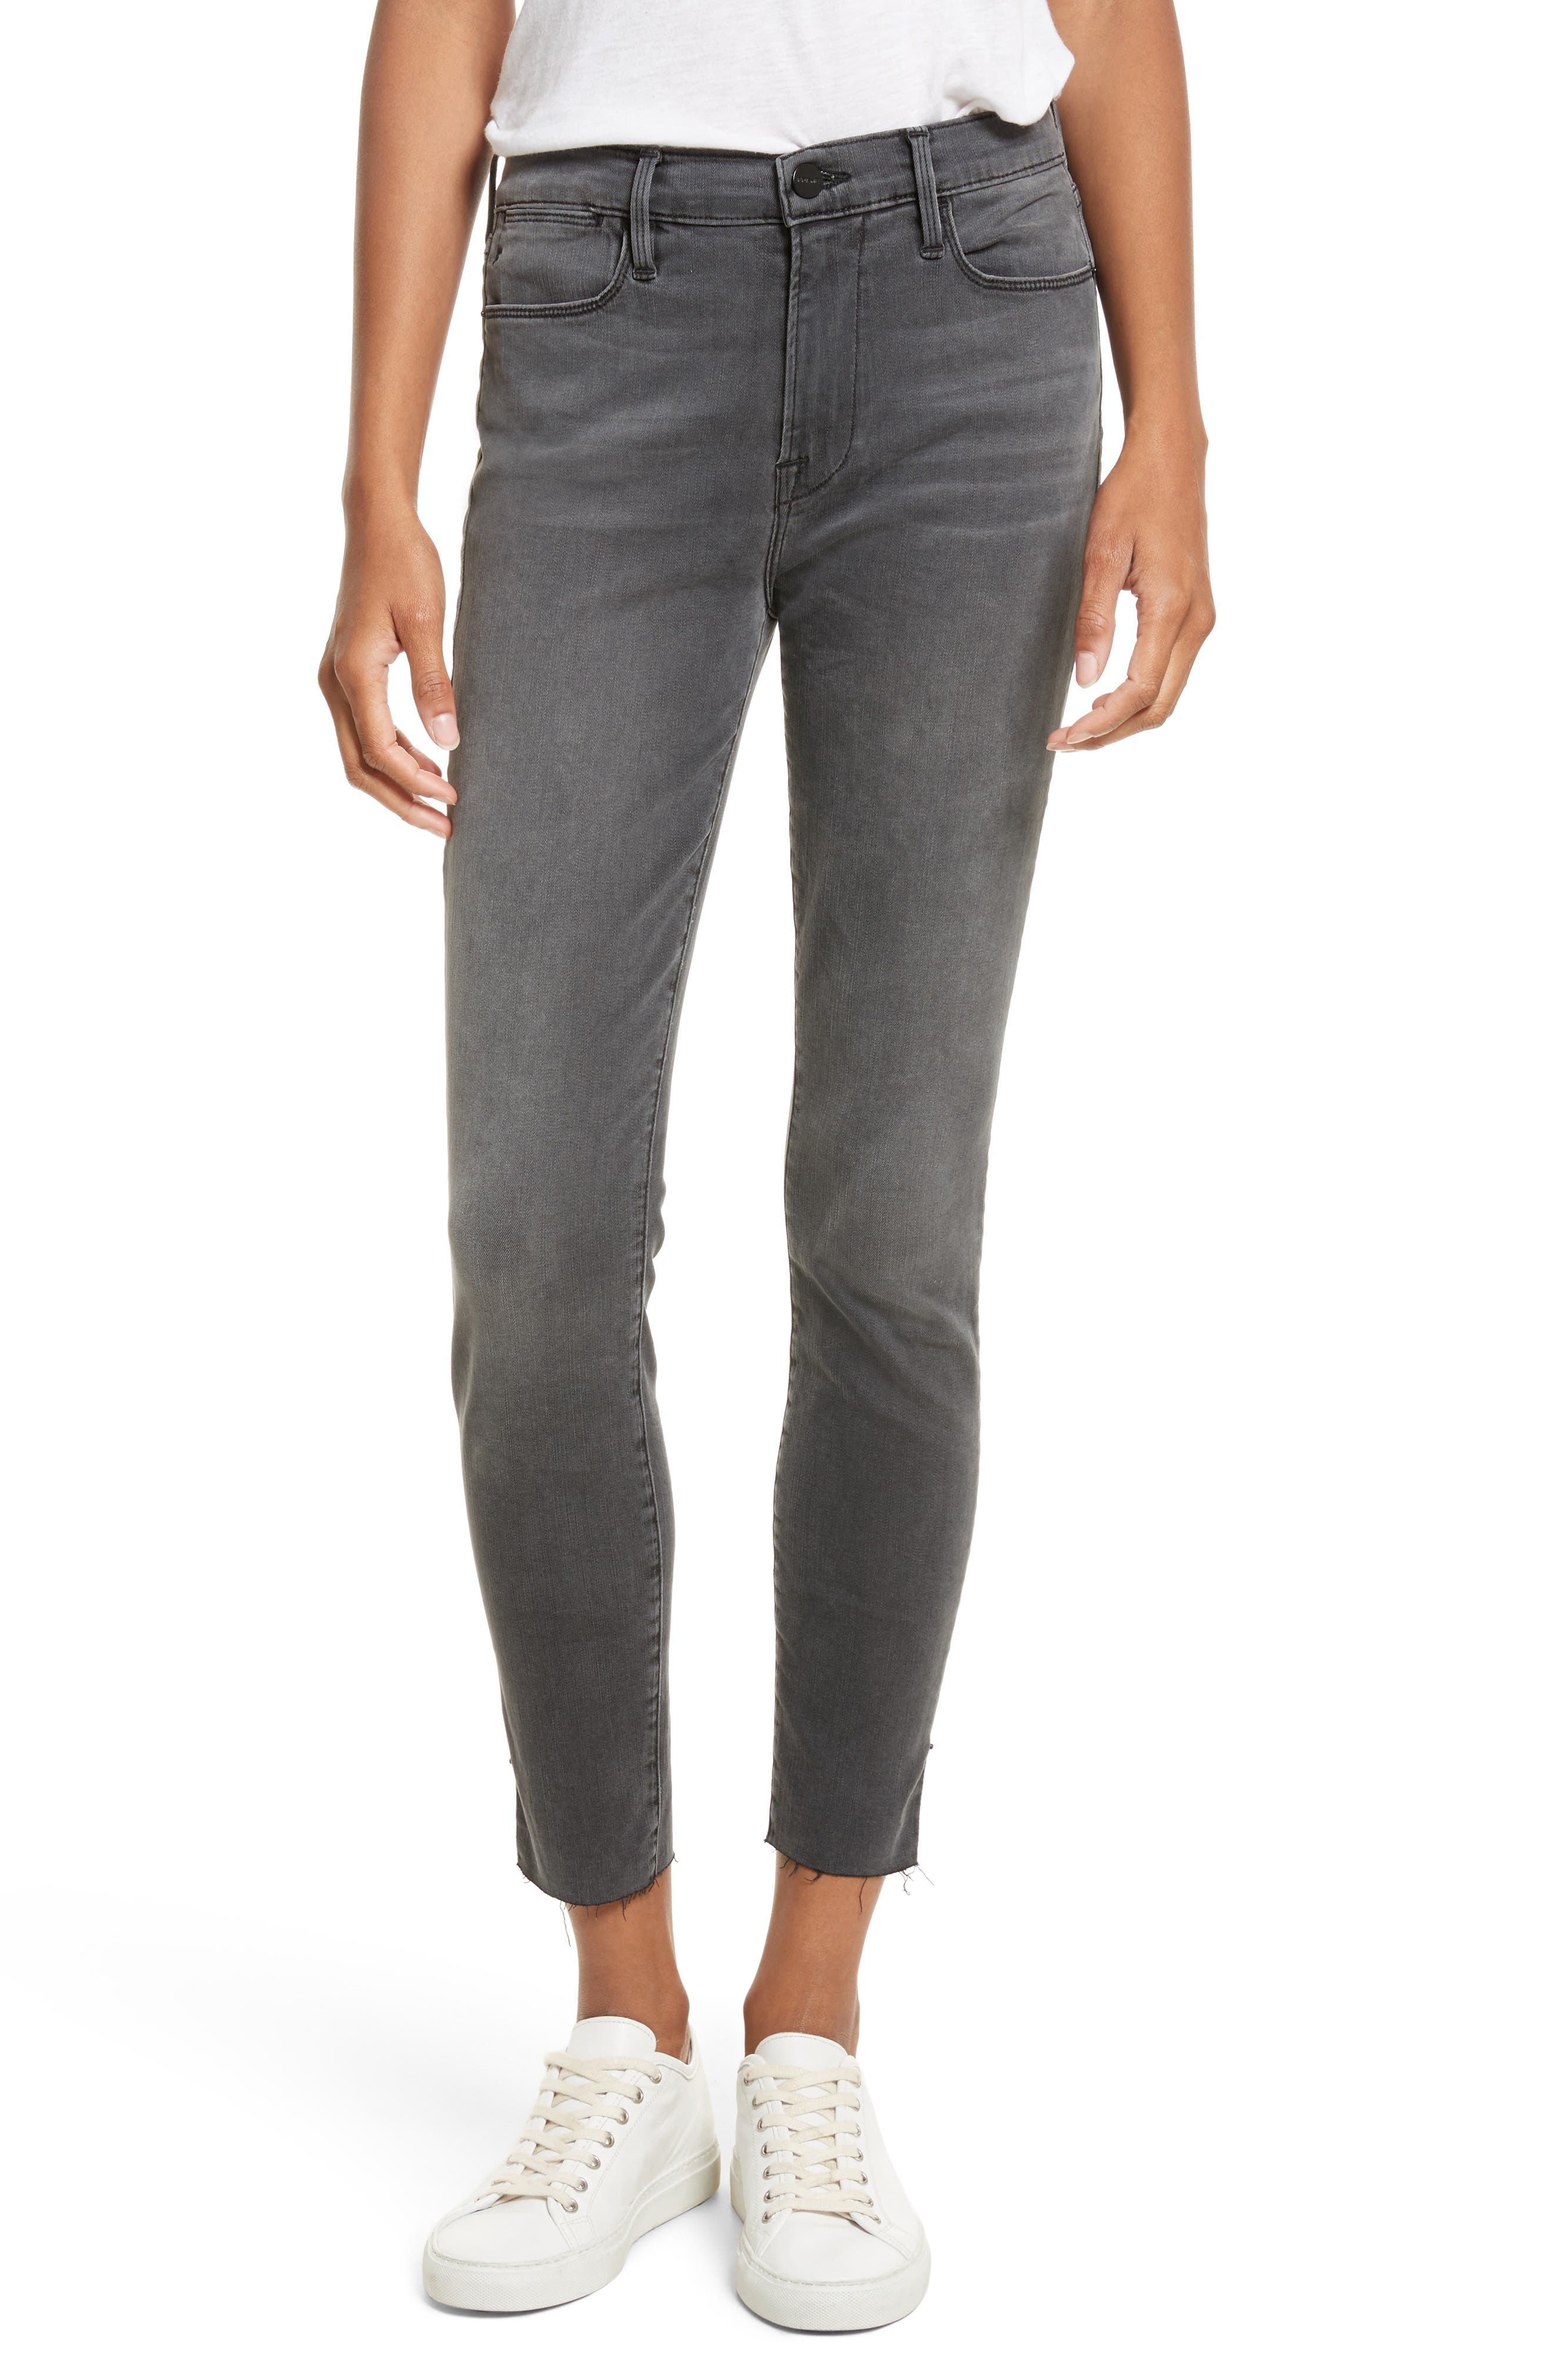 Le High Ankle Skinny Jeans,                             Main thumbnail 1, color,                             030